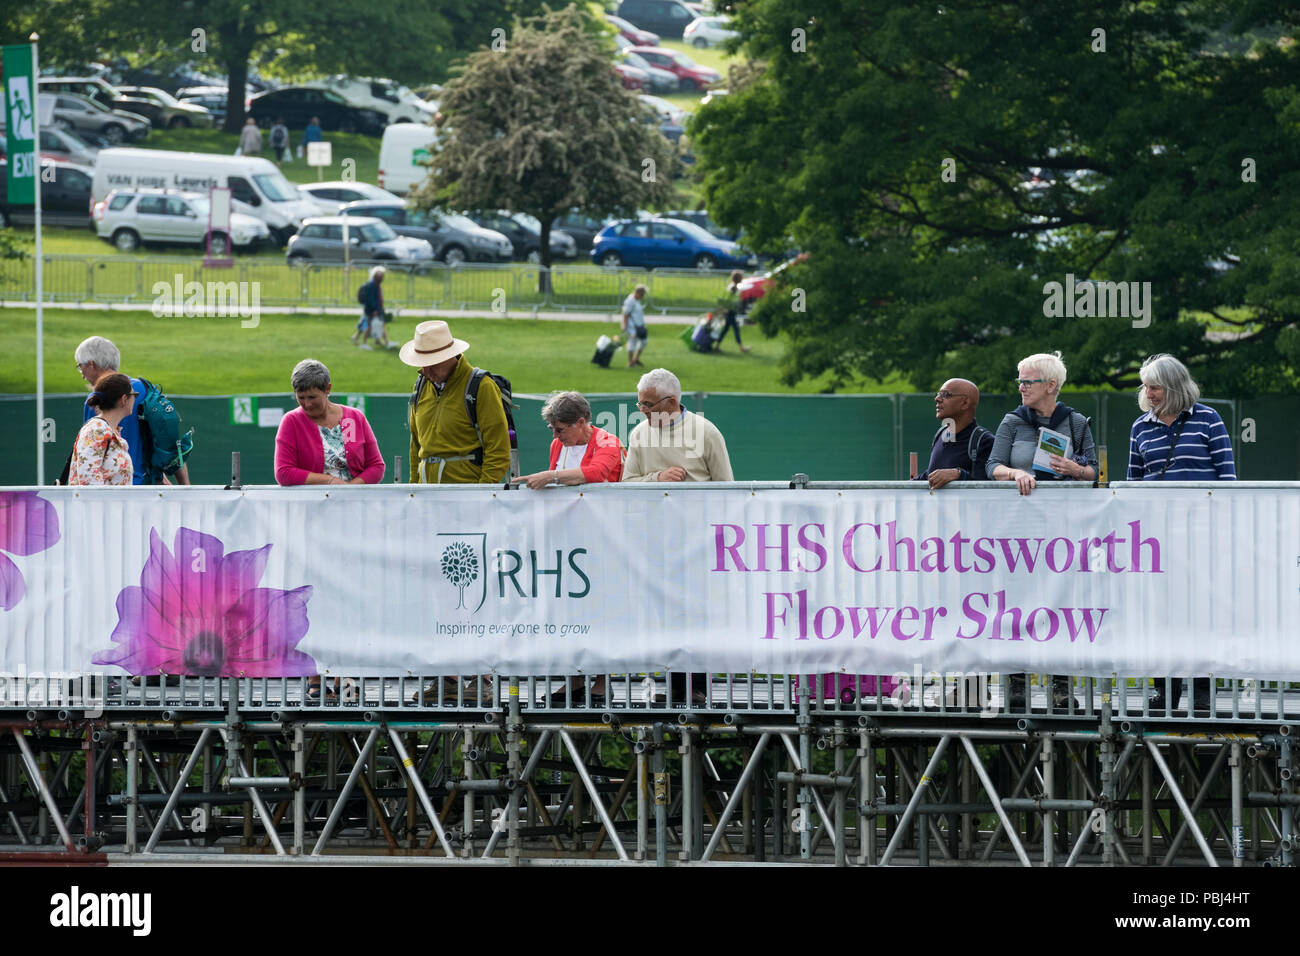 Showground visitors at RHS Chatsworth Flower Show, standing by promotional banner & looking over, temporary river bridge - Derbyshire, England, UK. - Stock Image